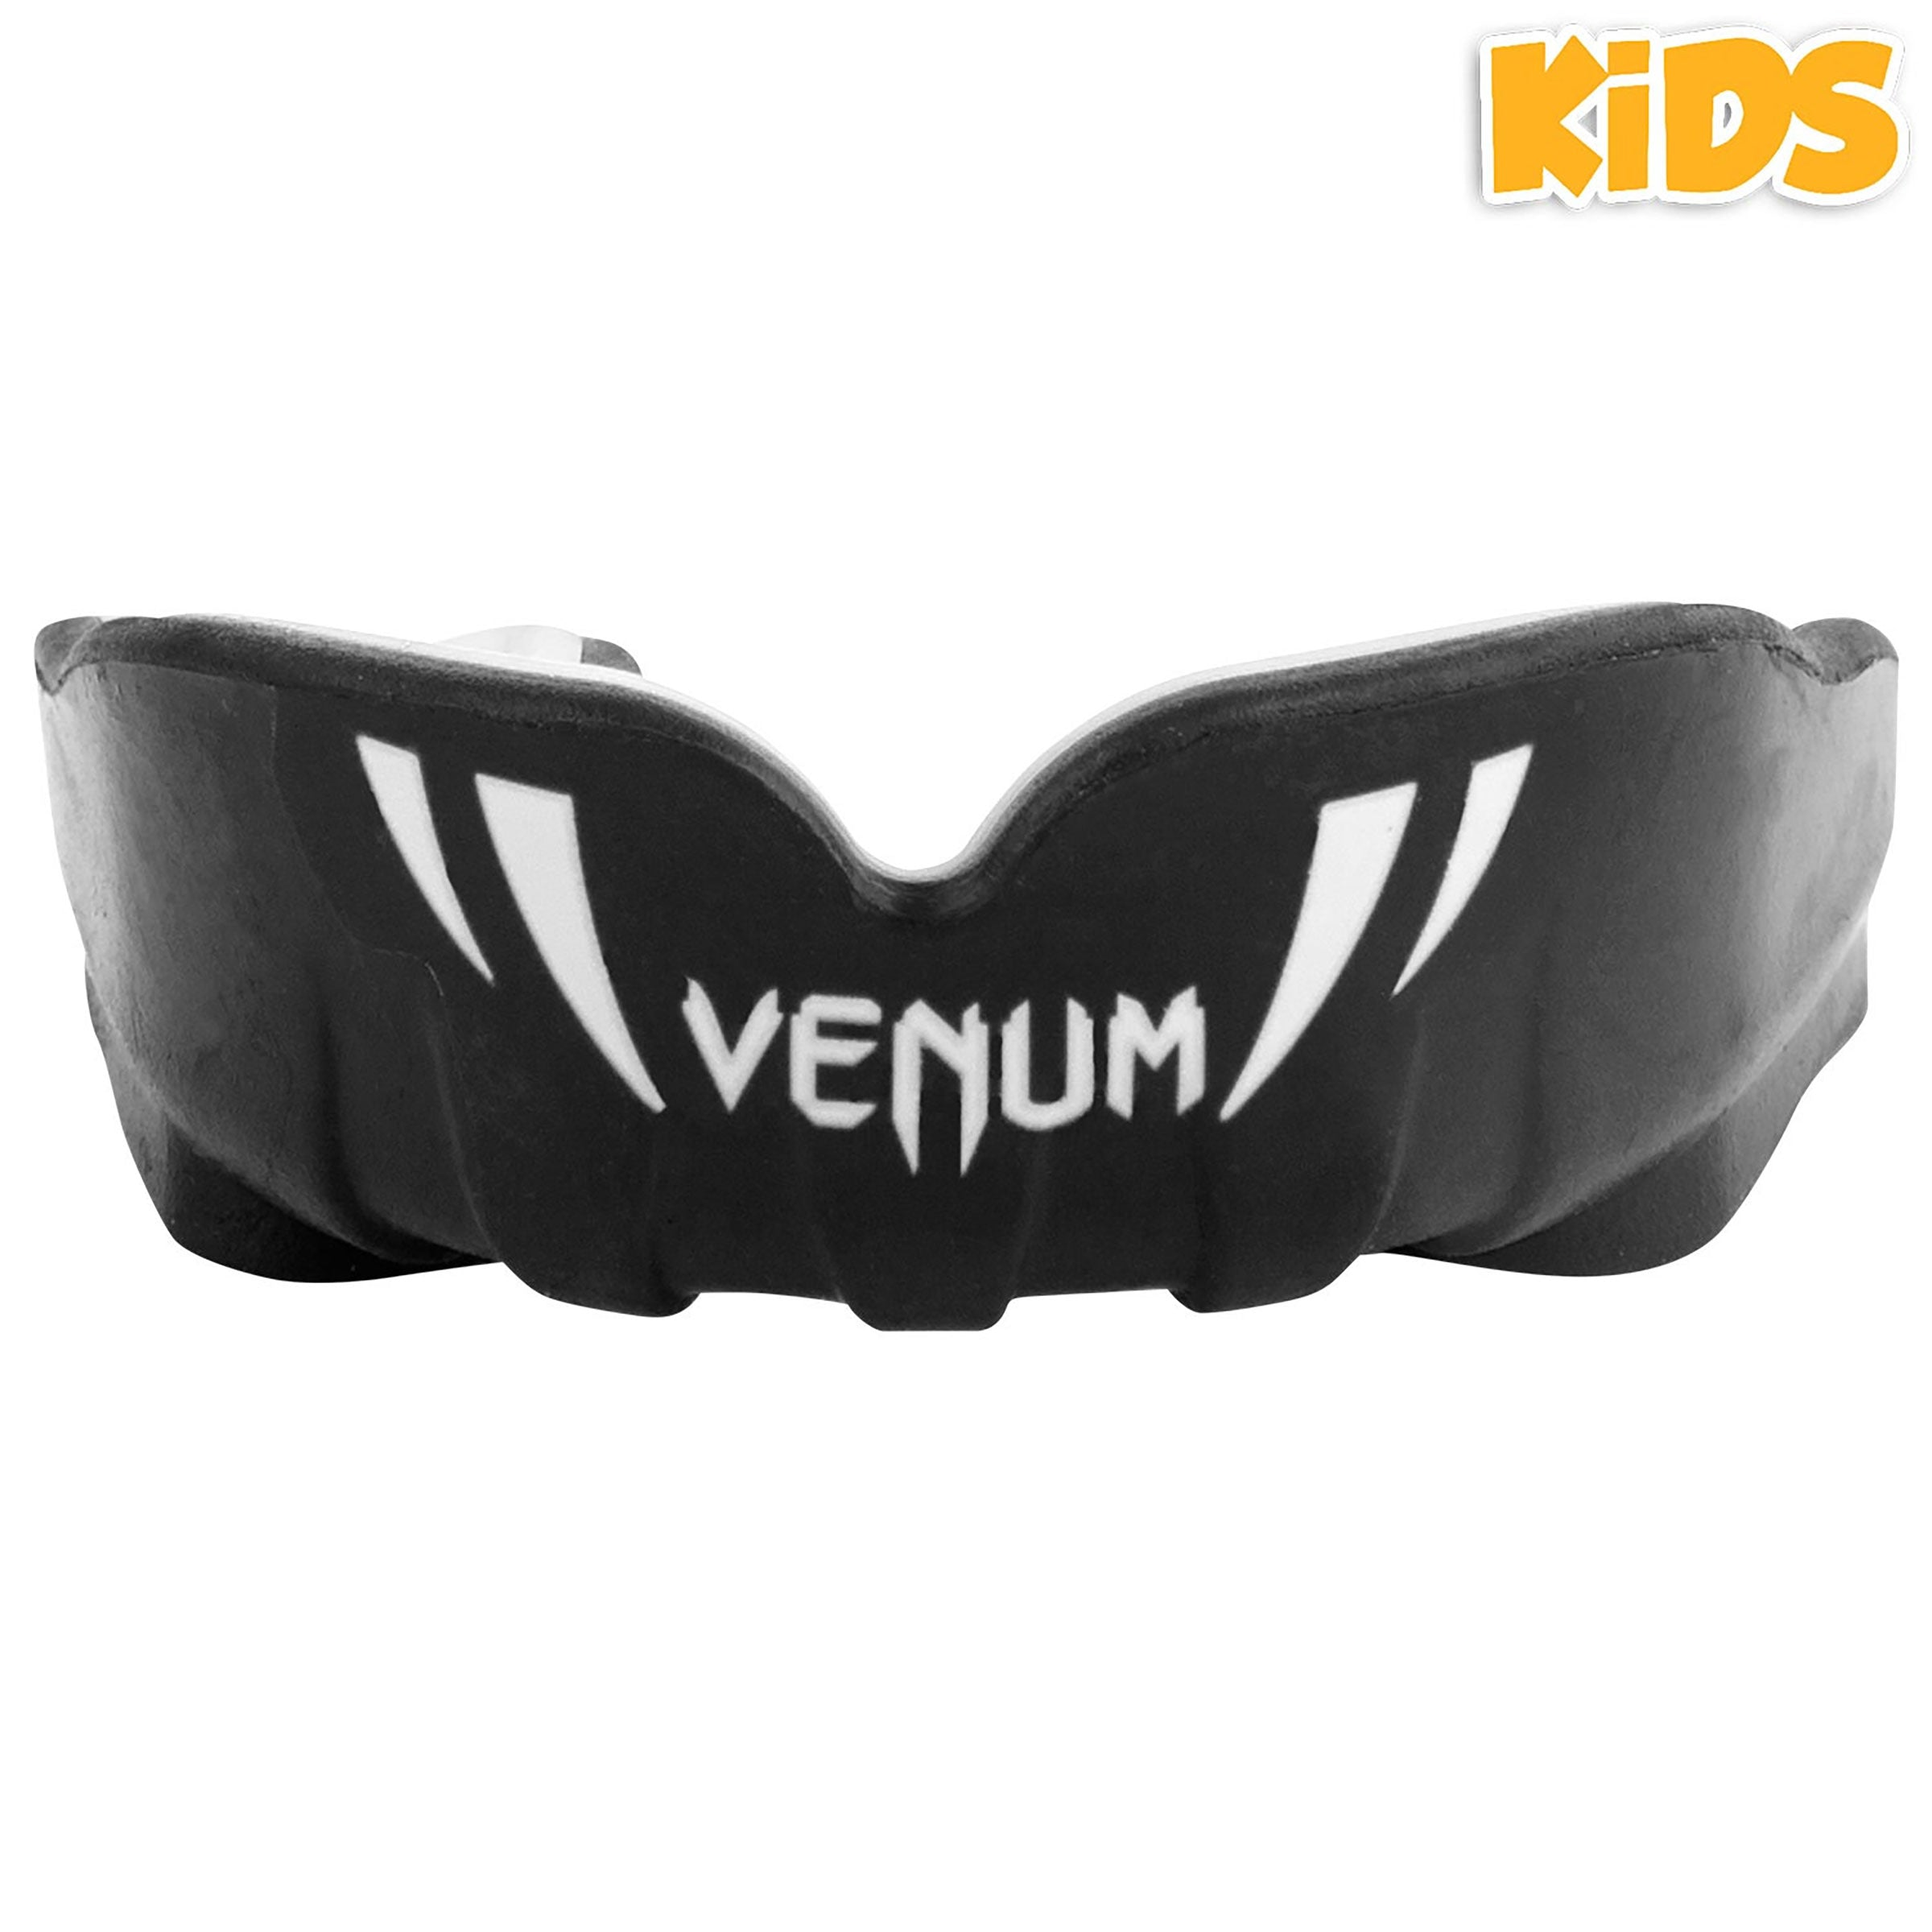 Image of Venum Challenger Kids Mouthguard